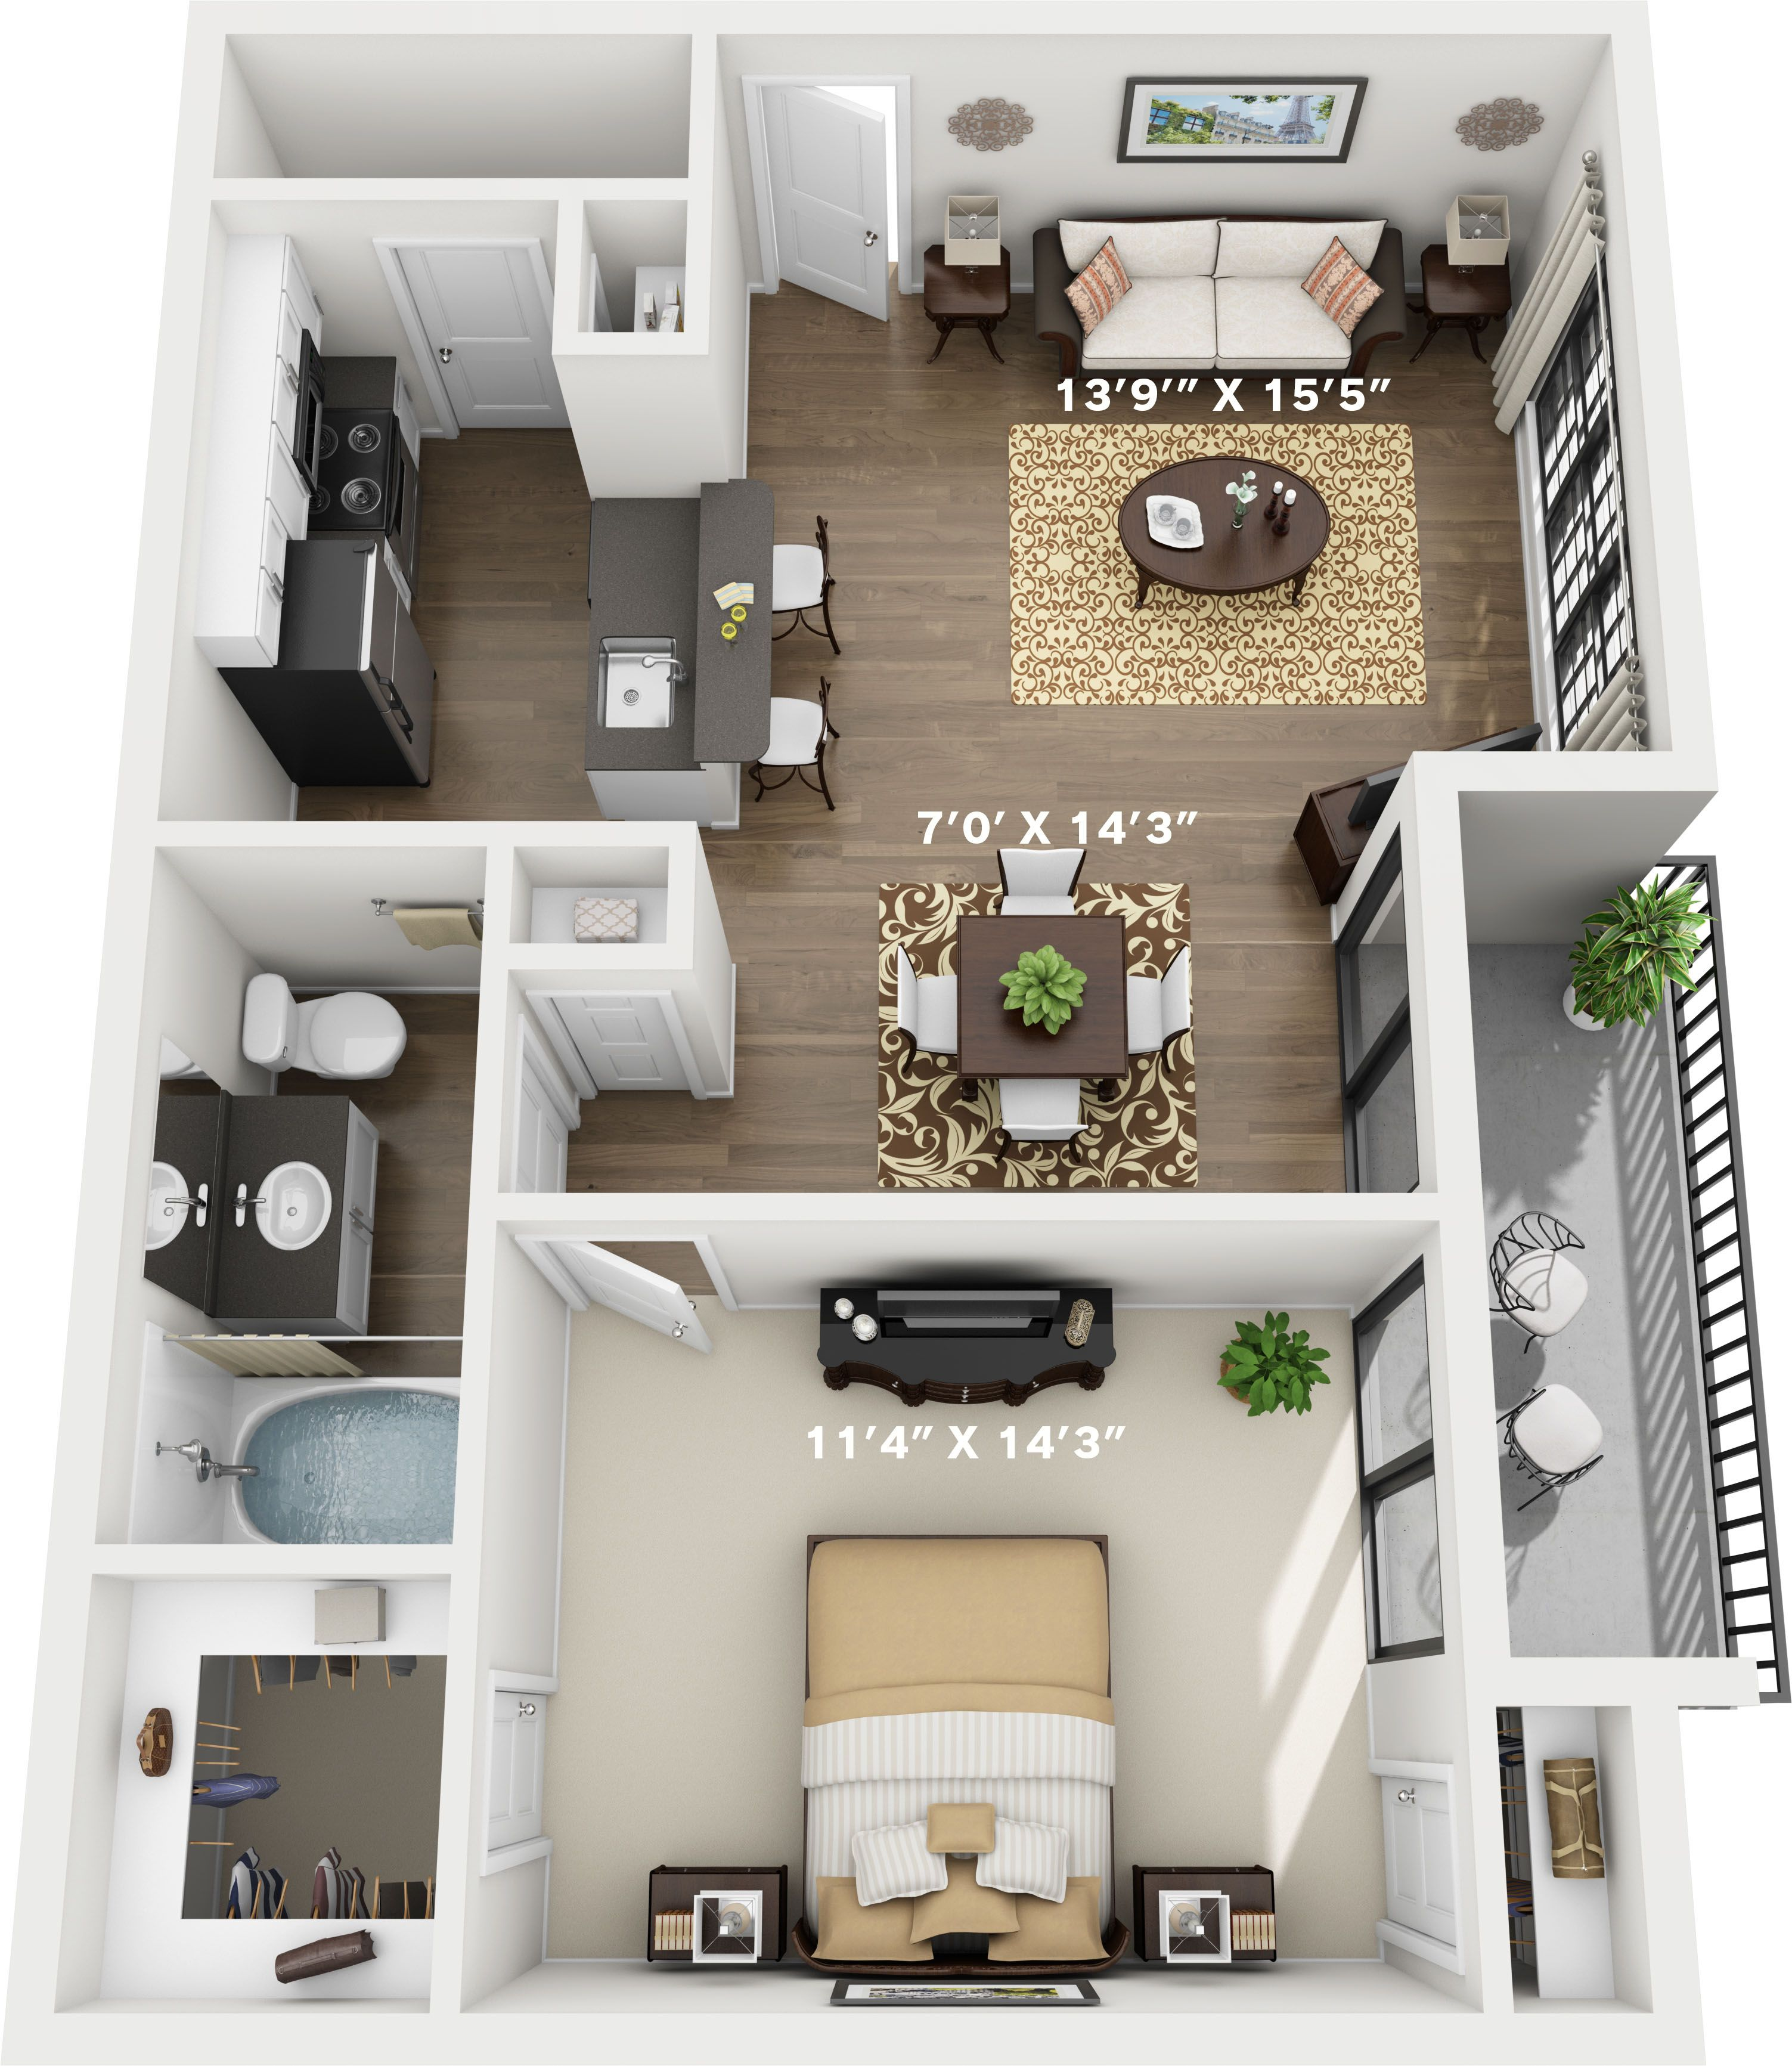 The Delano At North Richland Hills Almeria Renovated Sims 4 House Design Sims House Apartment Layout